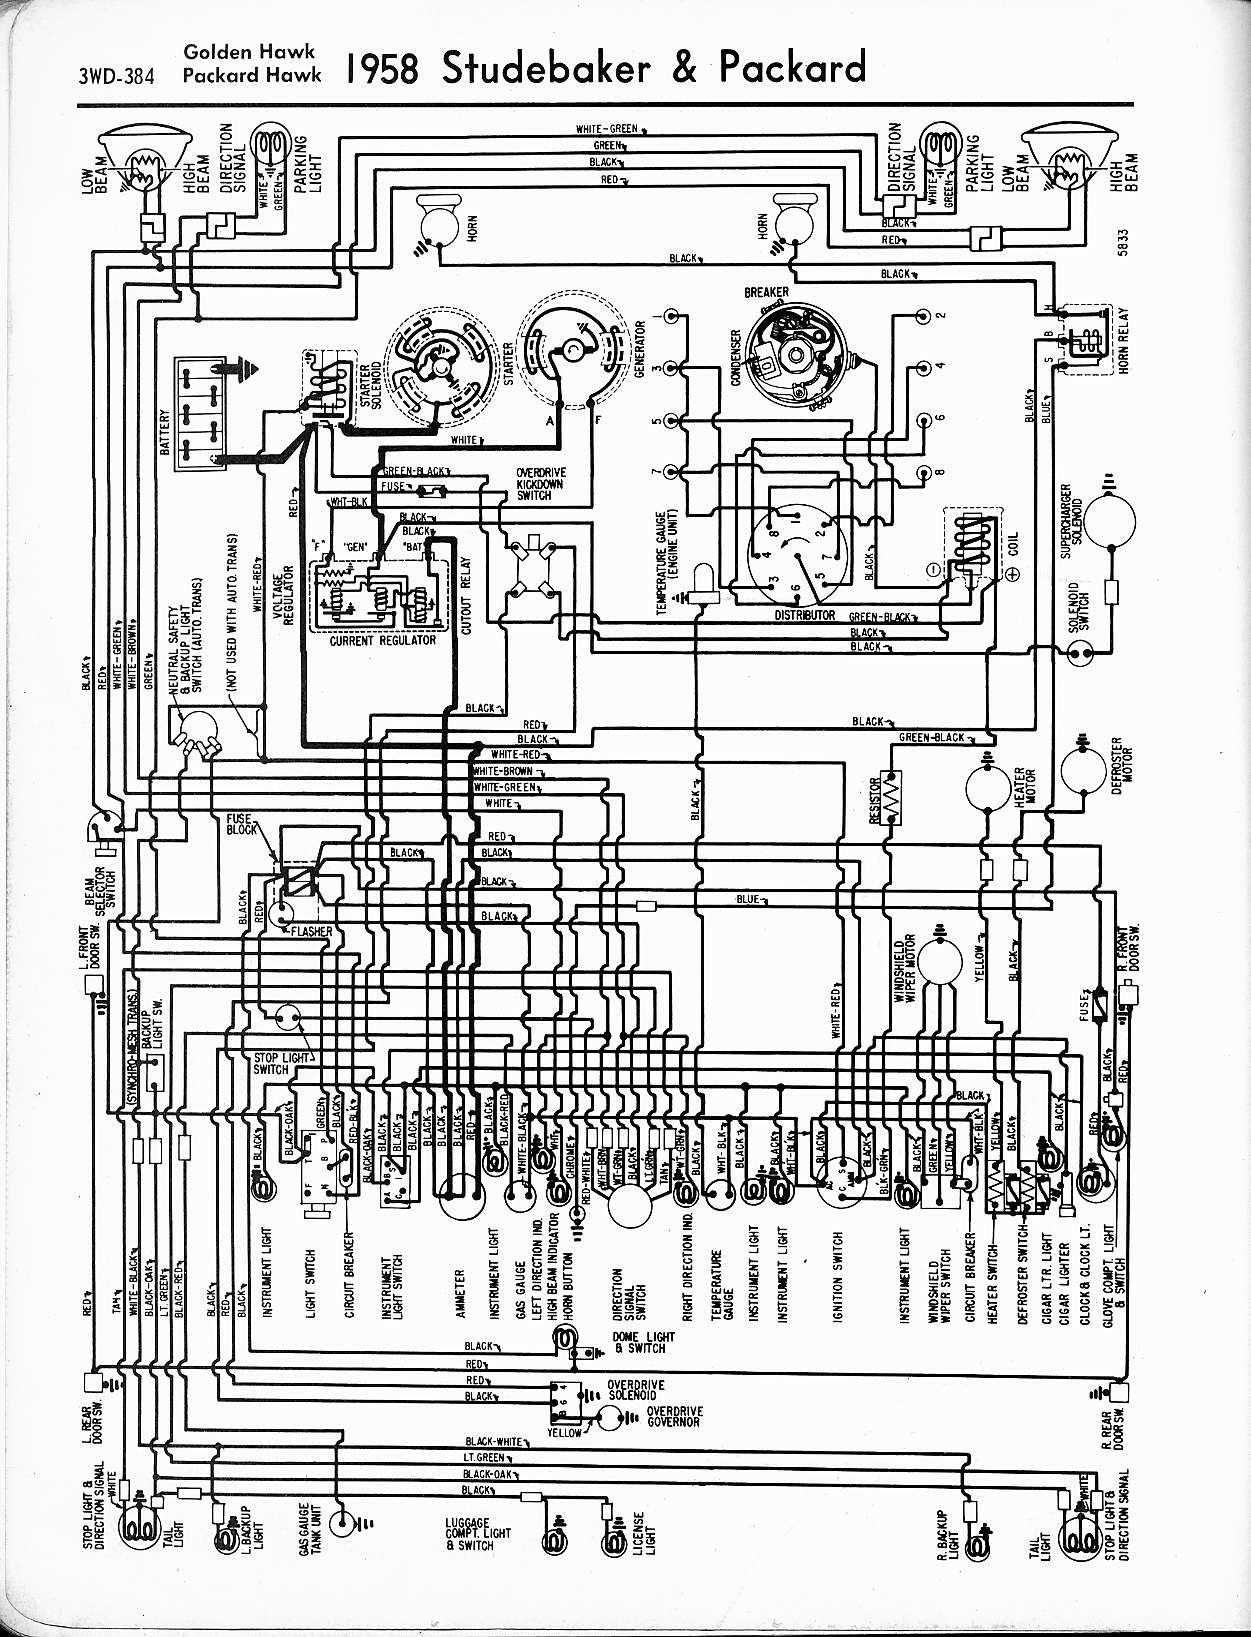 1948 Packard Wiring Diagram Real Mack Schematic Schematics Rh Enr Green Com 1986 Dodge Truck